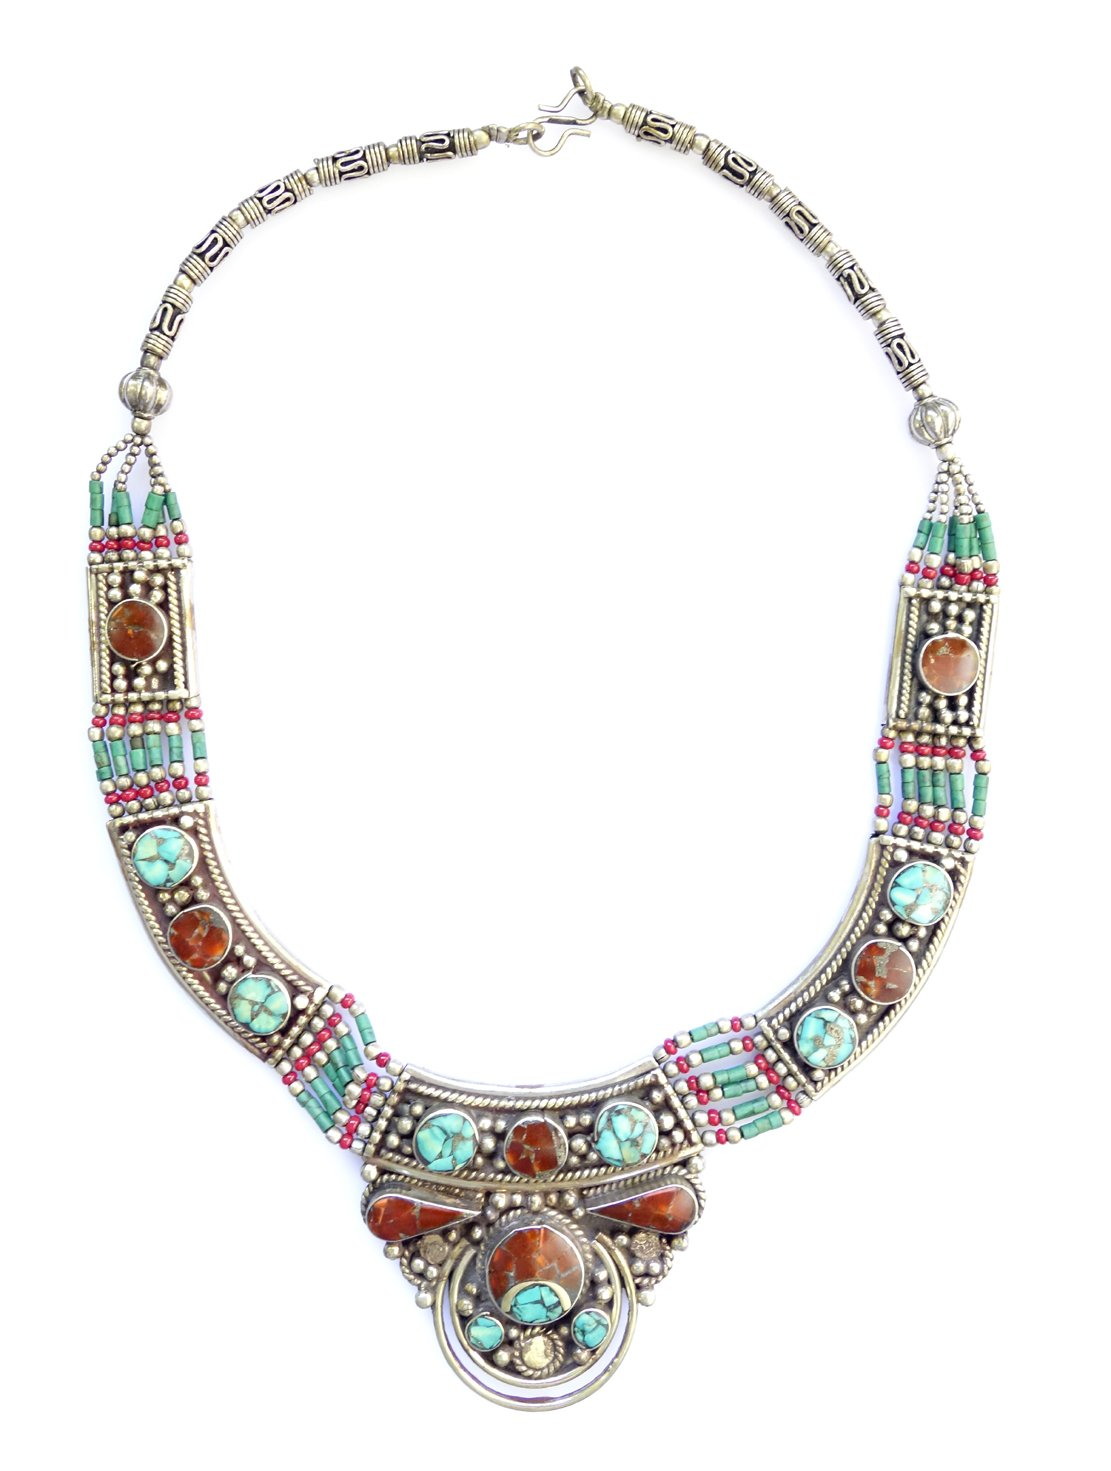 TURQUOISE & CORAL GEMSTONE TIBETAN HANDMADE NECKLACE FOR WOMEN 925 STERLING SILVER FASHION NECKLACE UNIQUE ETHNIC TRIBAL GYPSY FUSION STATEMENT NECKLACE